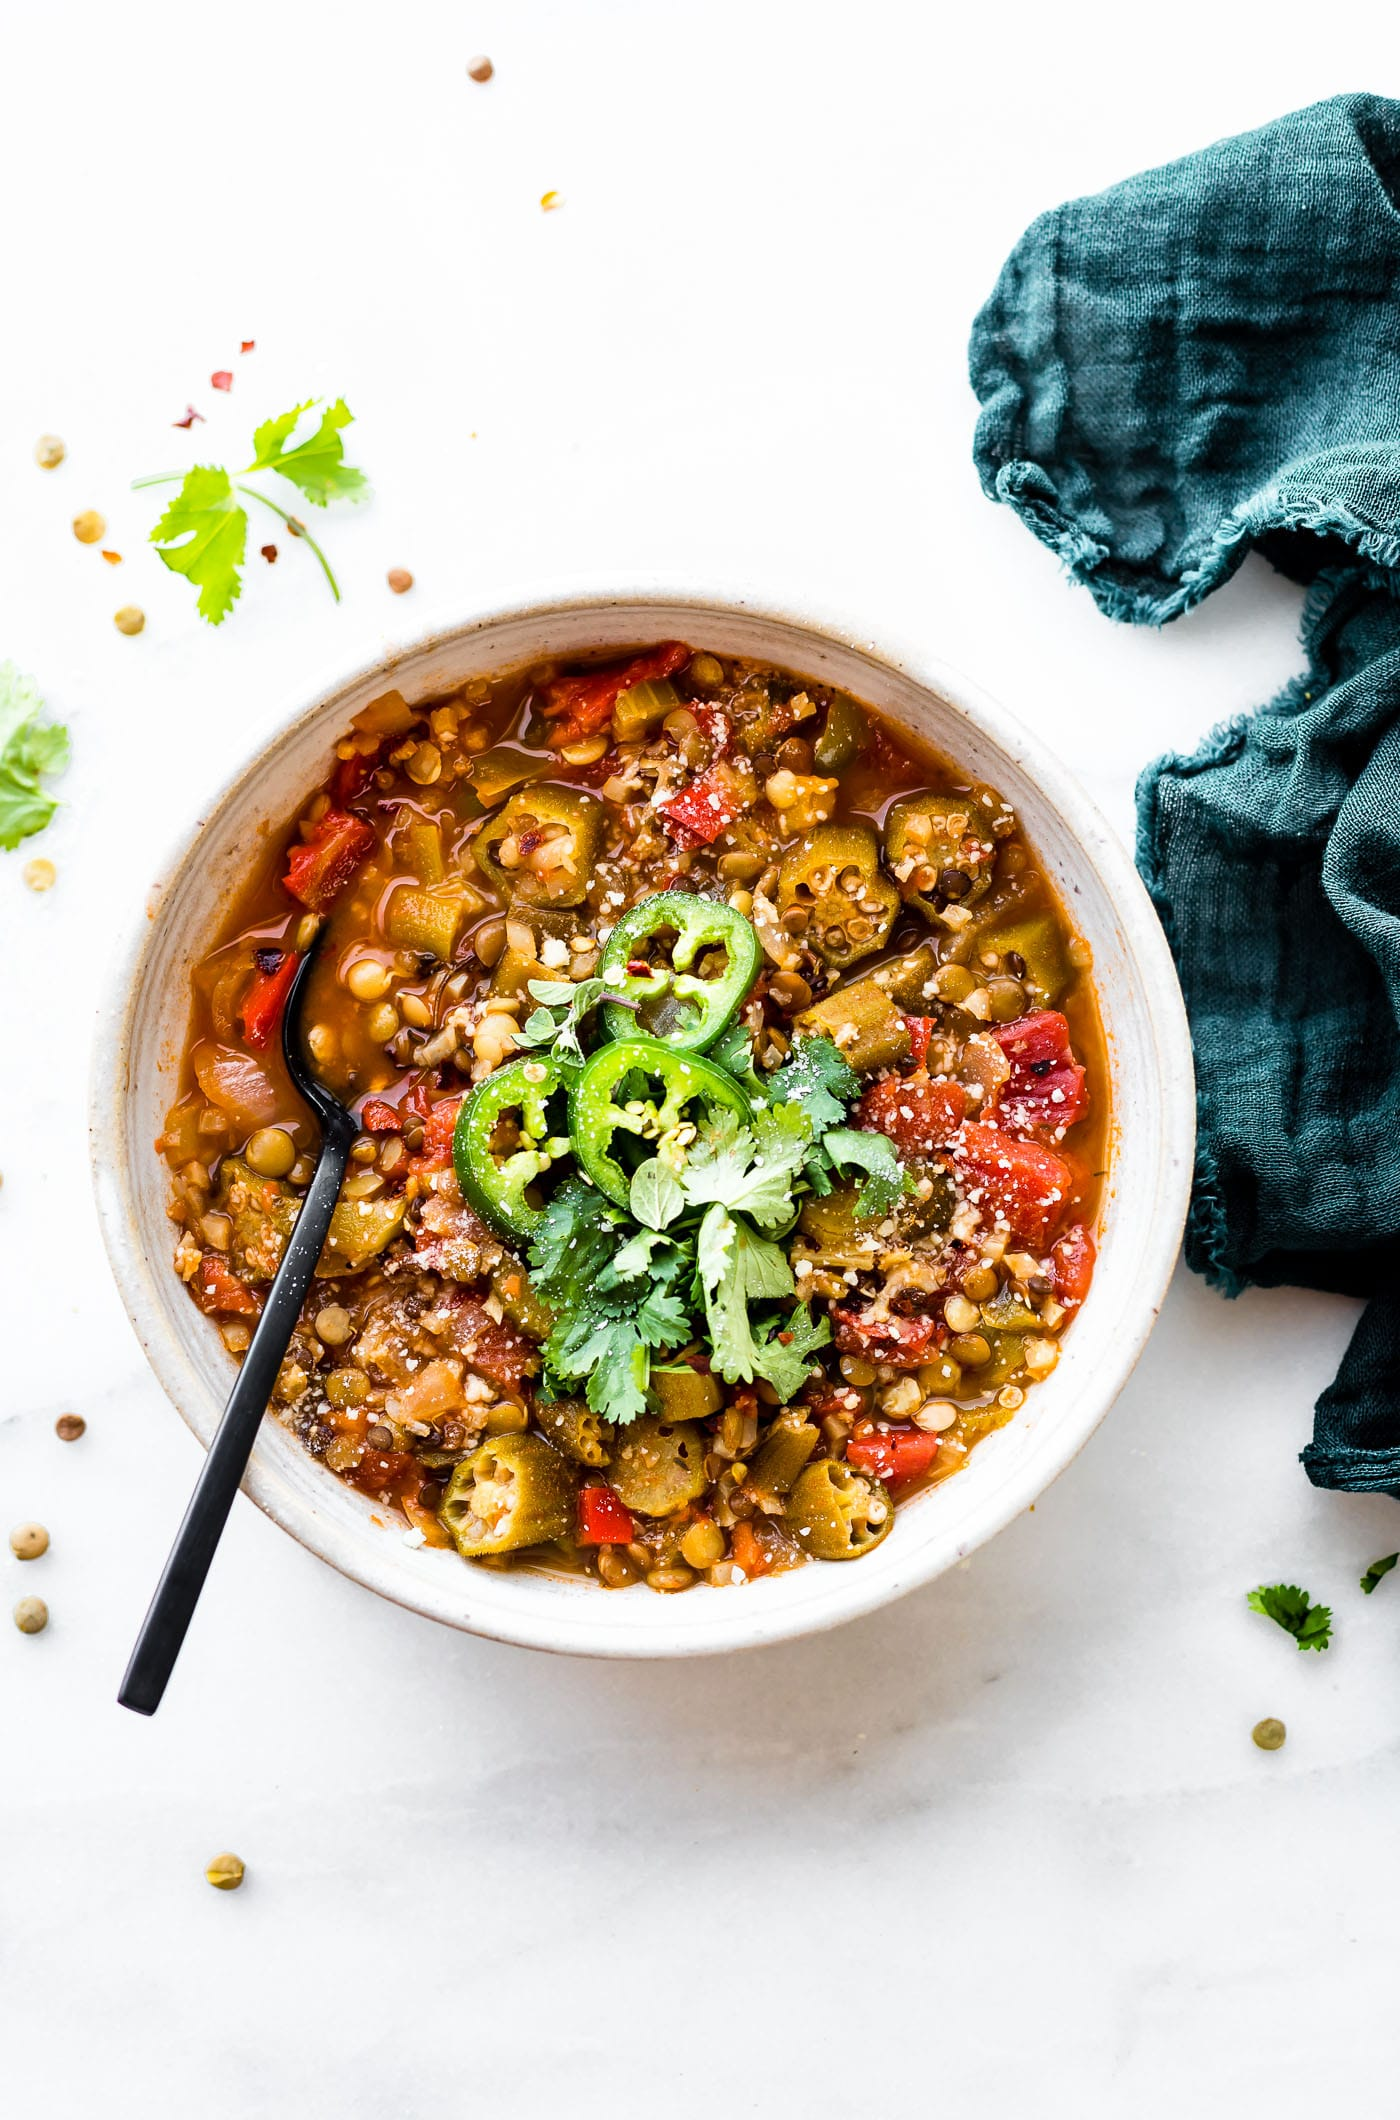 This vegan lentil gumbo recipe is wholesome, savory, and filling. A quick vegetarian gumbo that's budget friendly and full of flavor.